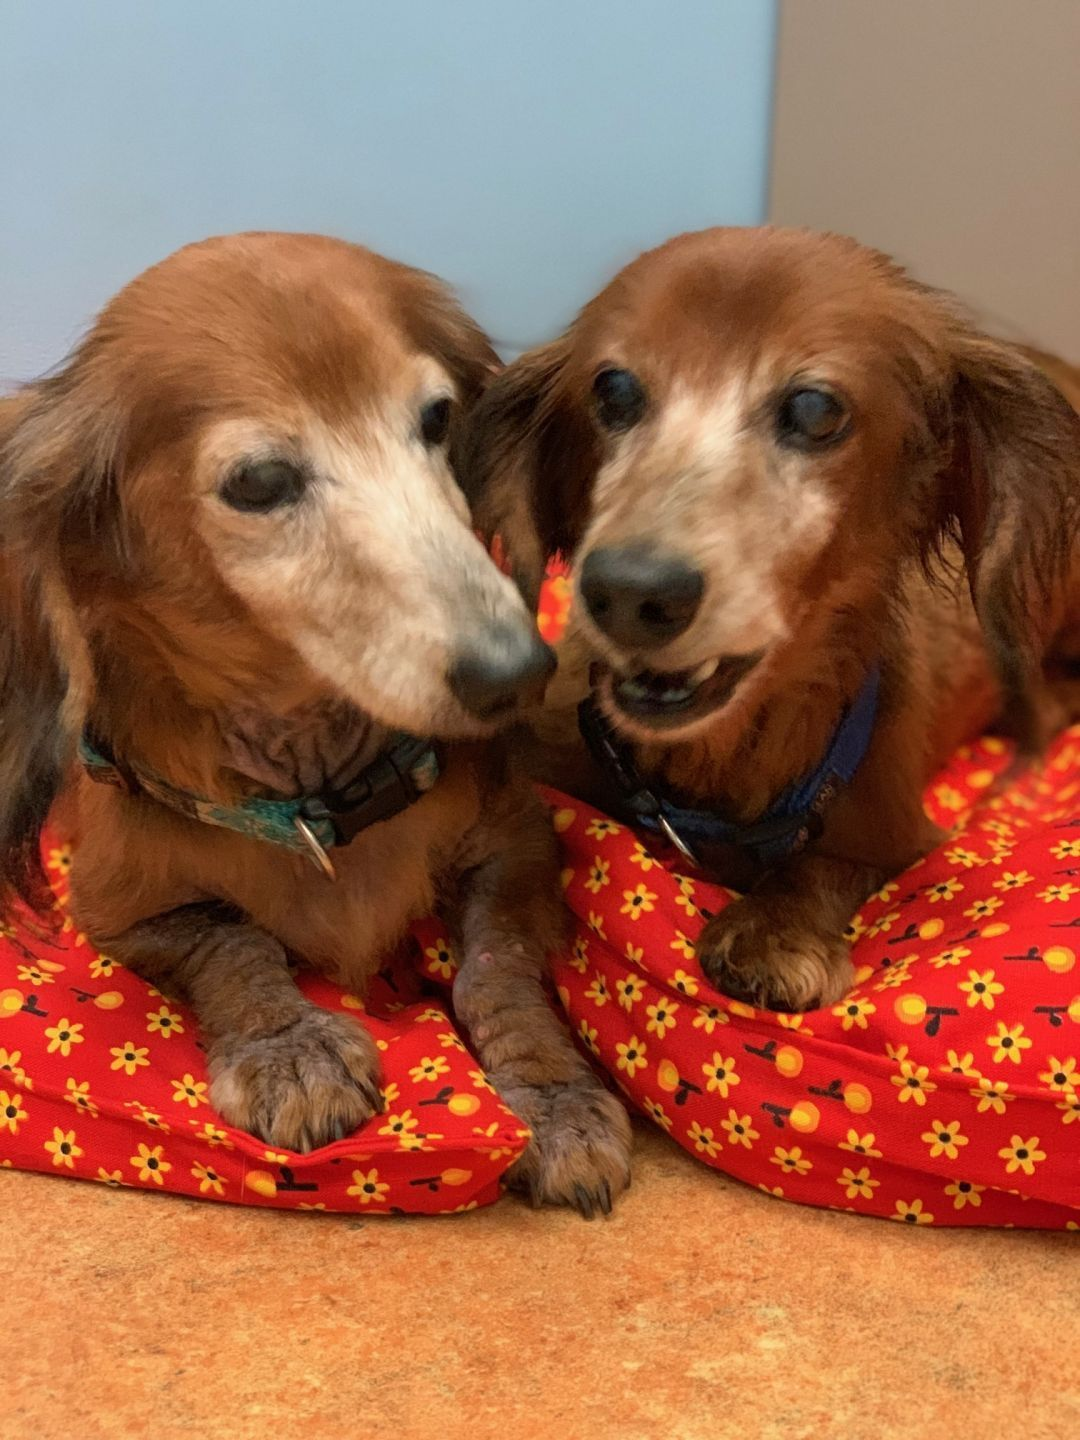 Bo and Luke, an adoptable Dachshund pair in Miami Beach